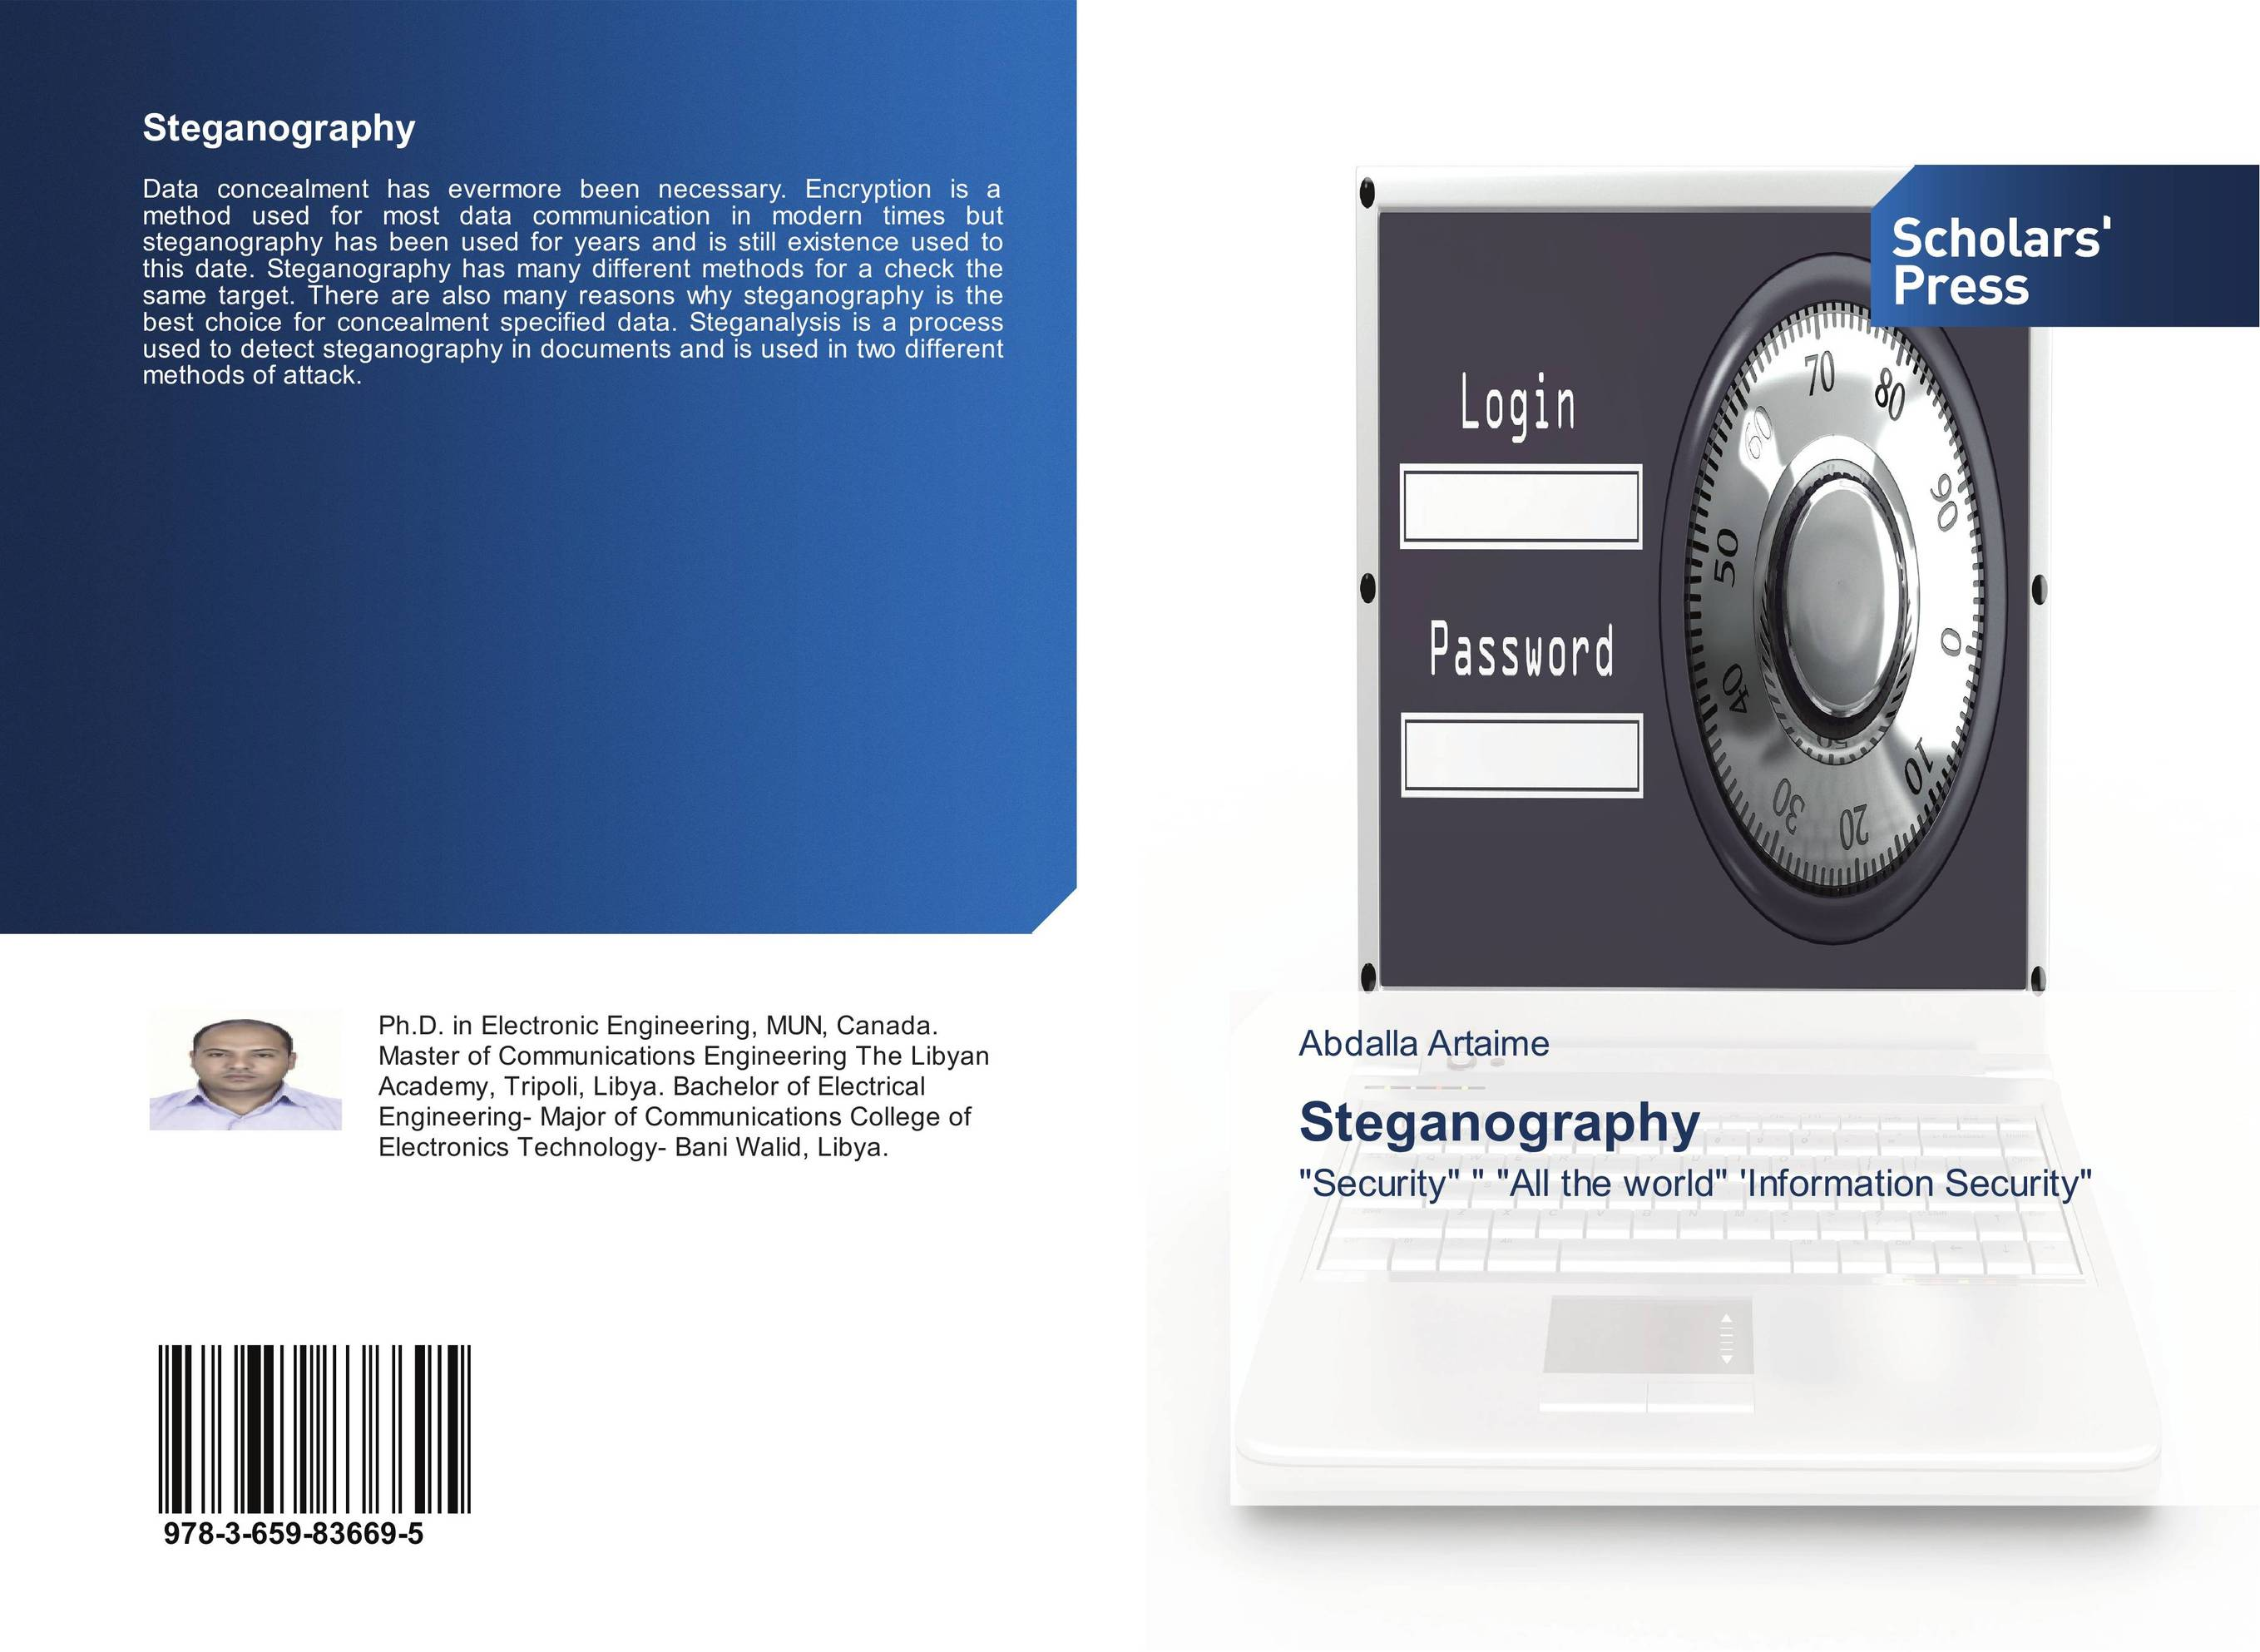 Steganography belousov a security features of banknotes and other documents methods of authentication manual денежные билеты бланки ценных бумаг и документов